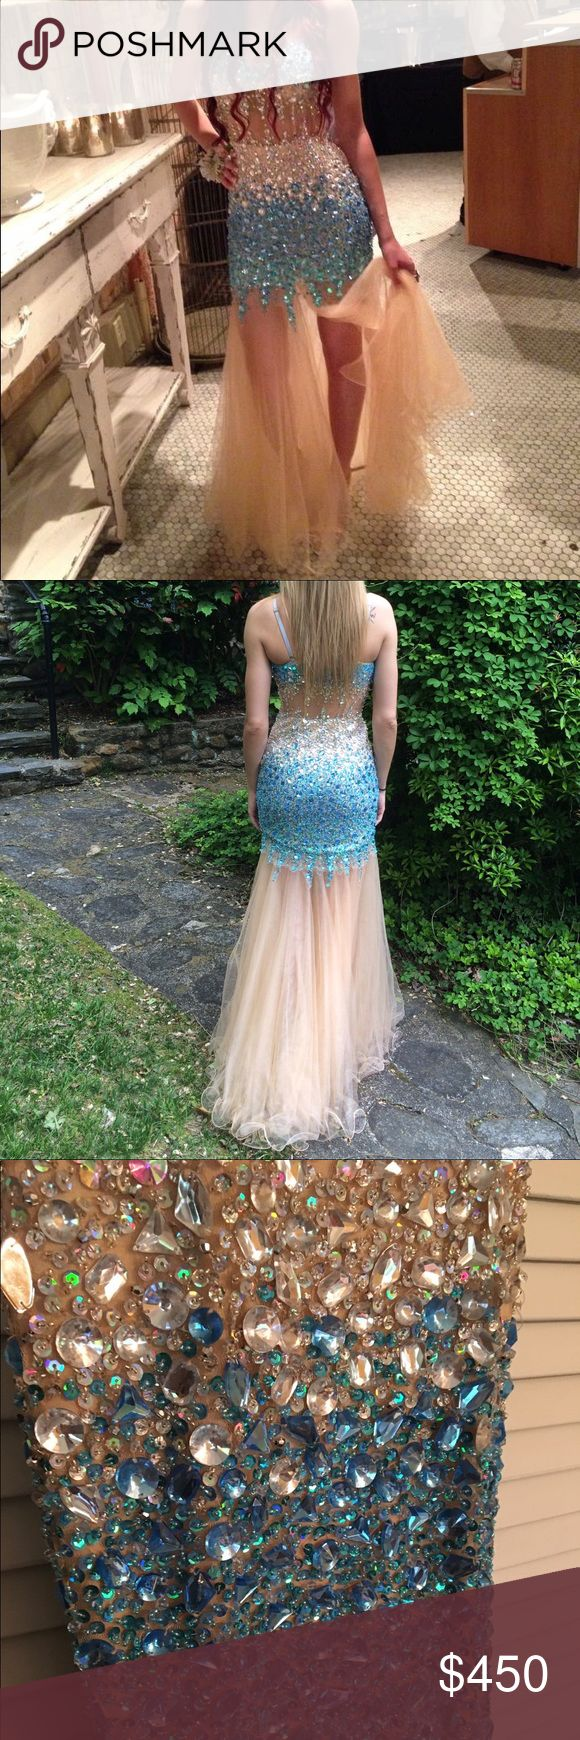 Prom Dress Beautiful beaded blue and nude prom dress size 1/2, can fit a 4. Model is 5'10 and 135 lbs Dresses Prom